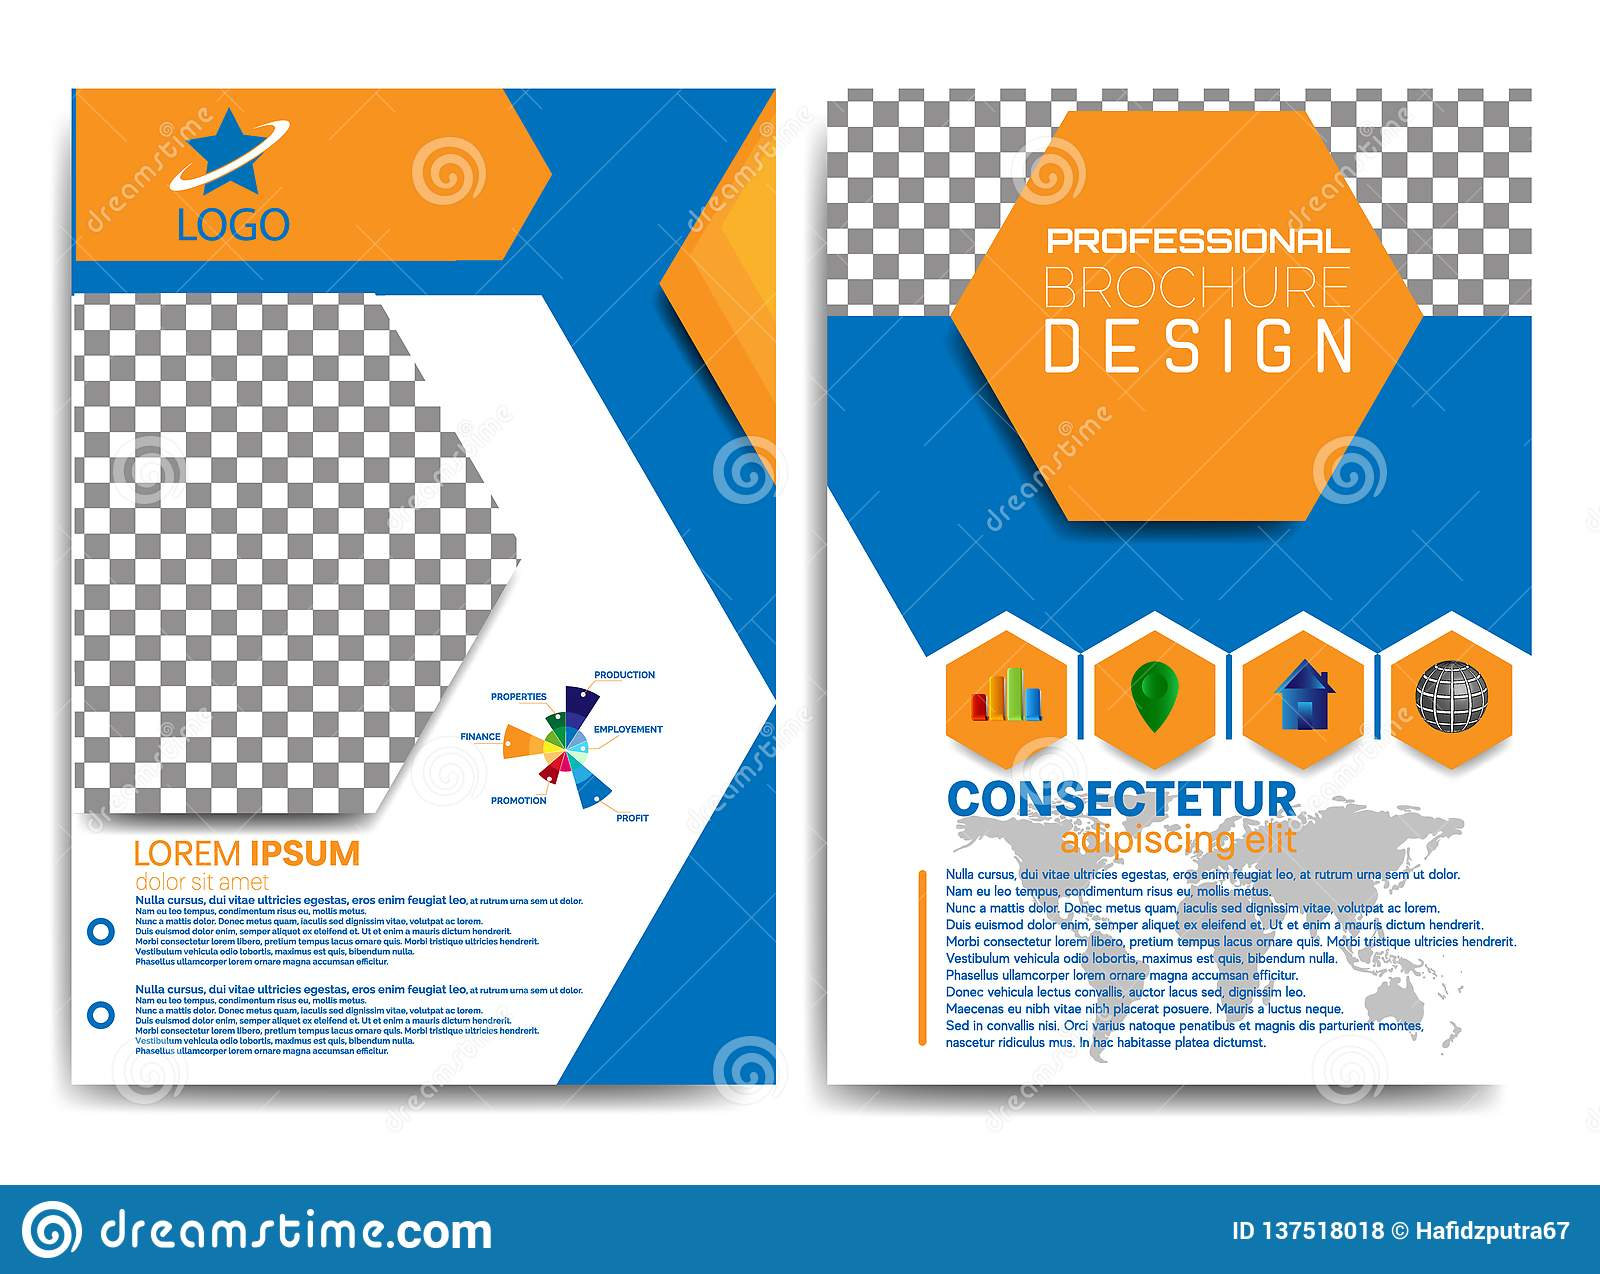 professional brochure design with blue and orange colors